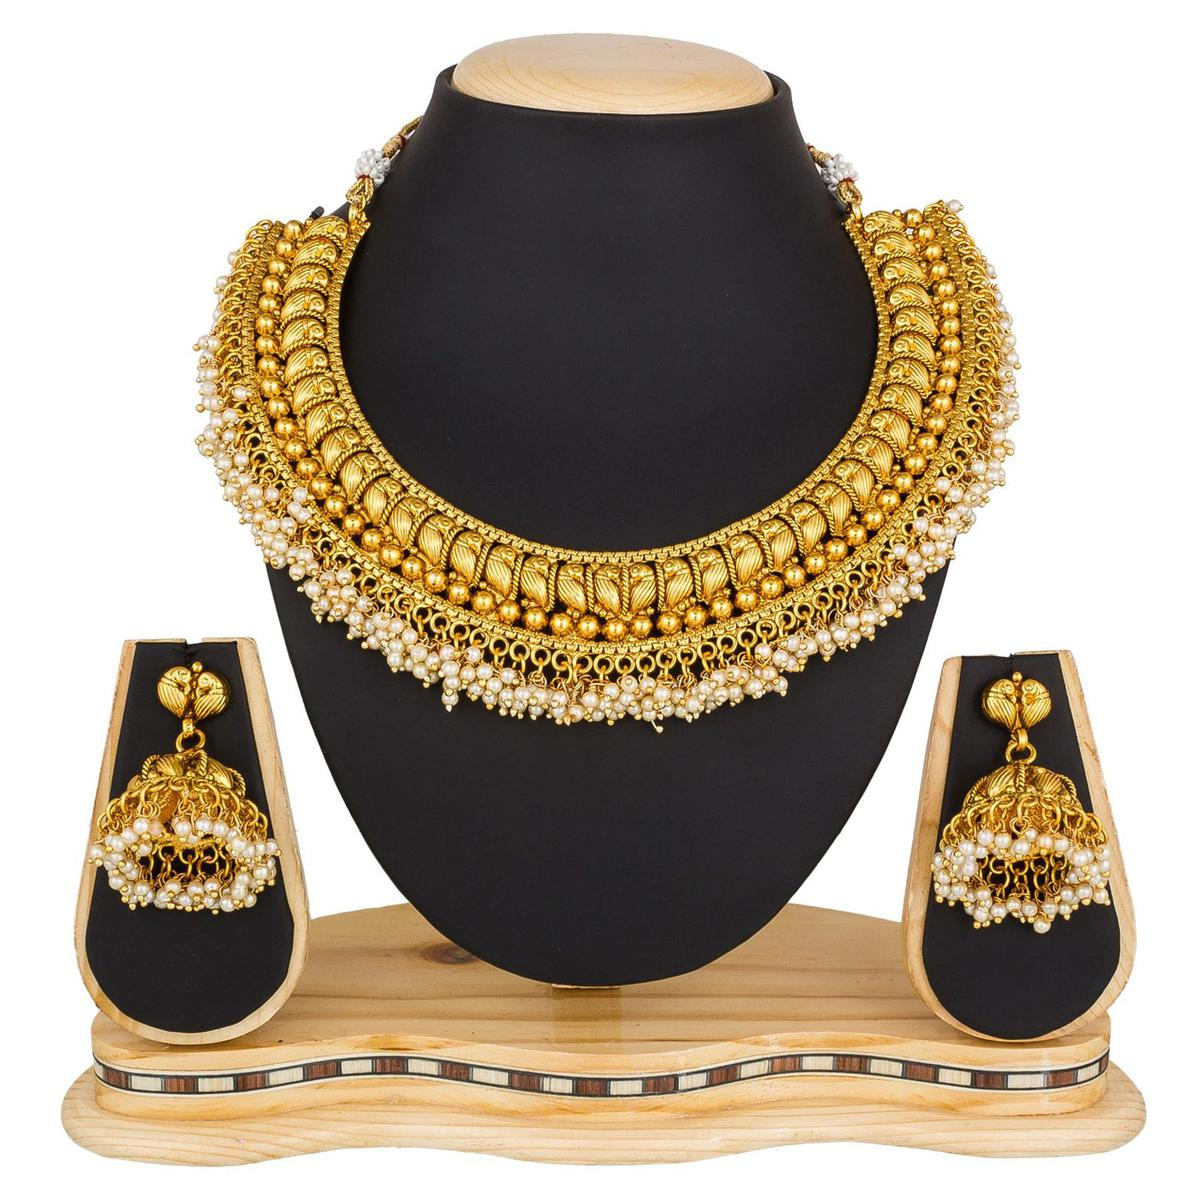 Mesmeric Golden Colored Moti & Stone Work Mix Metal Necklace Set